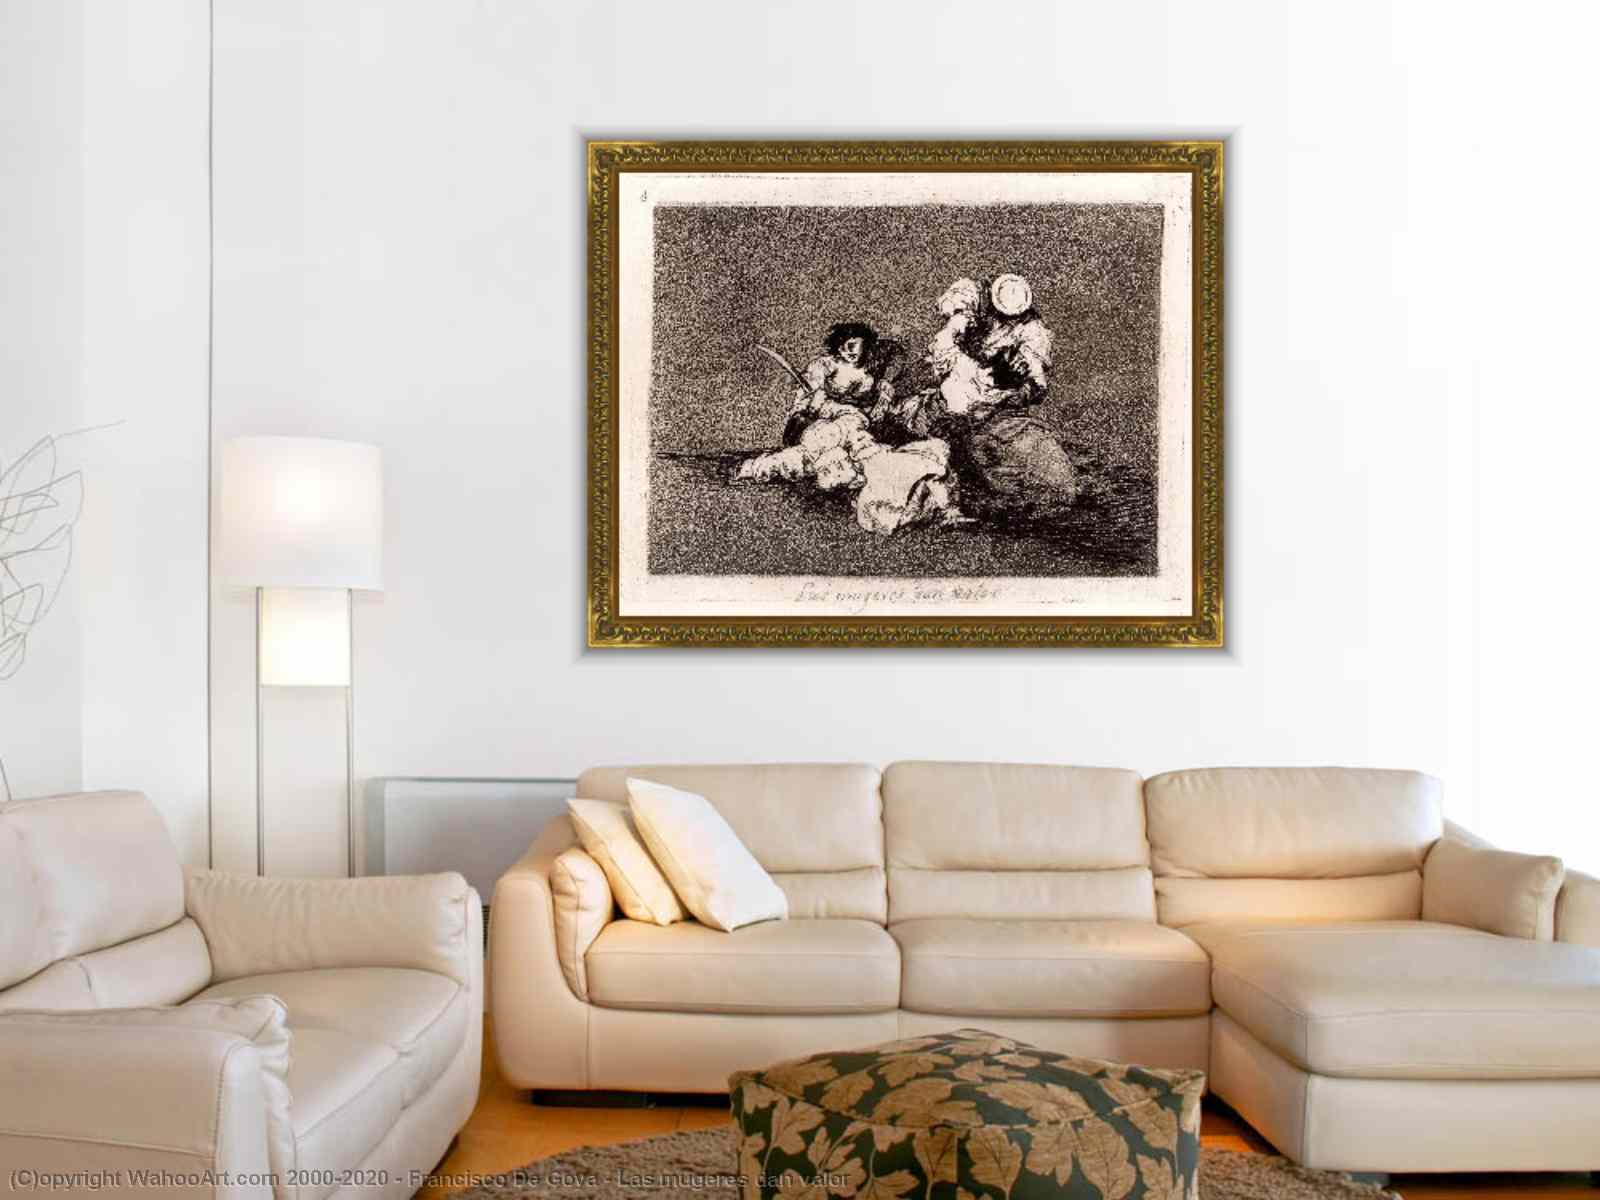 Las mugeres dan valor by Francisco De Goya | Reproductions Pop Art ...